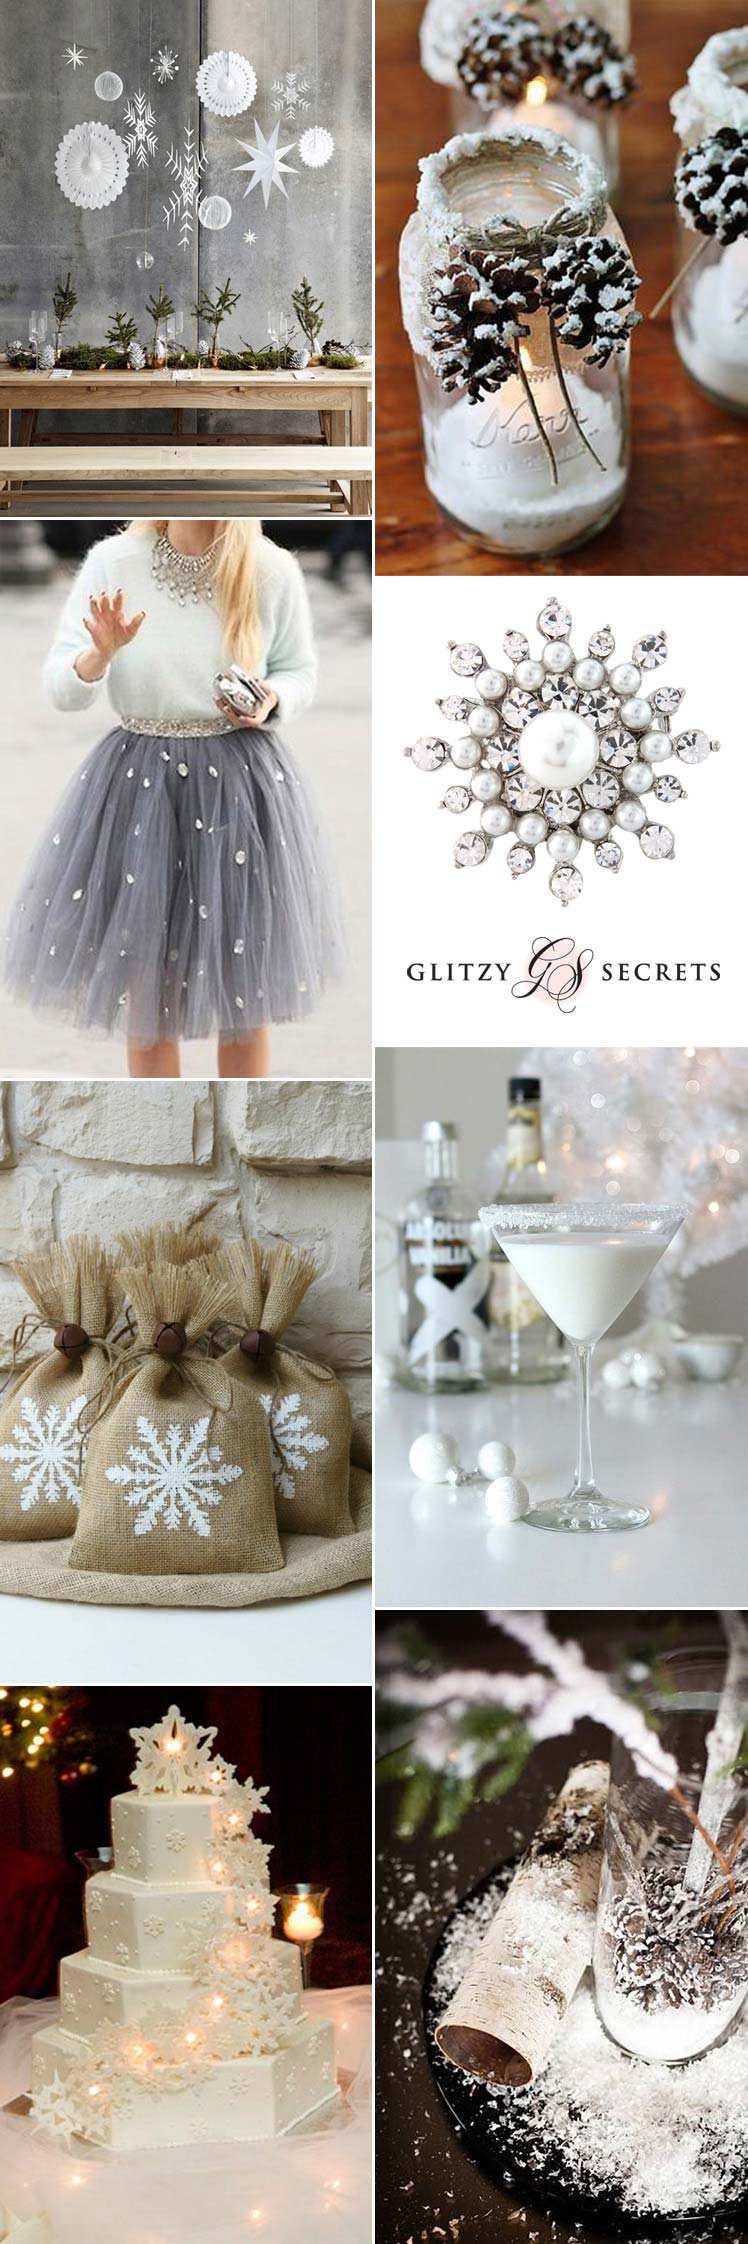 Beautiful snow flake wedding theme ideas